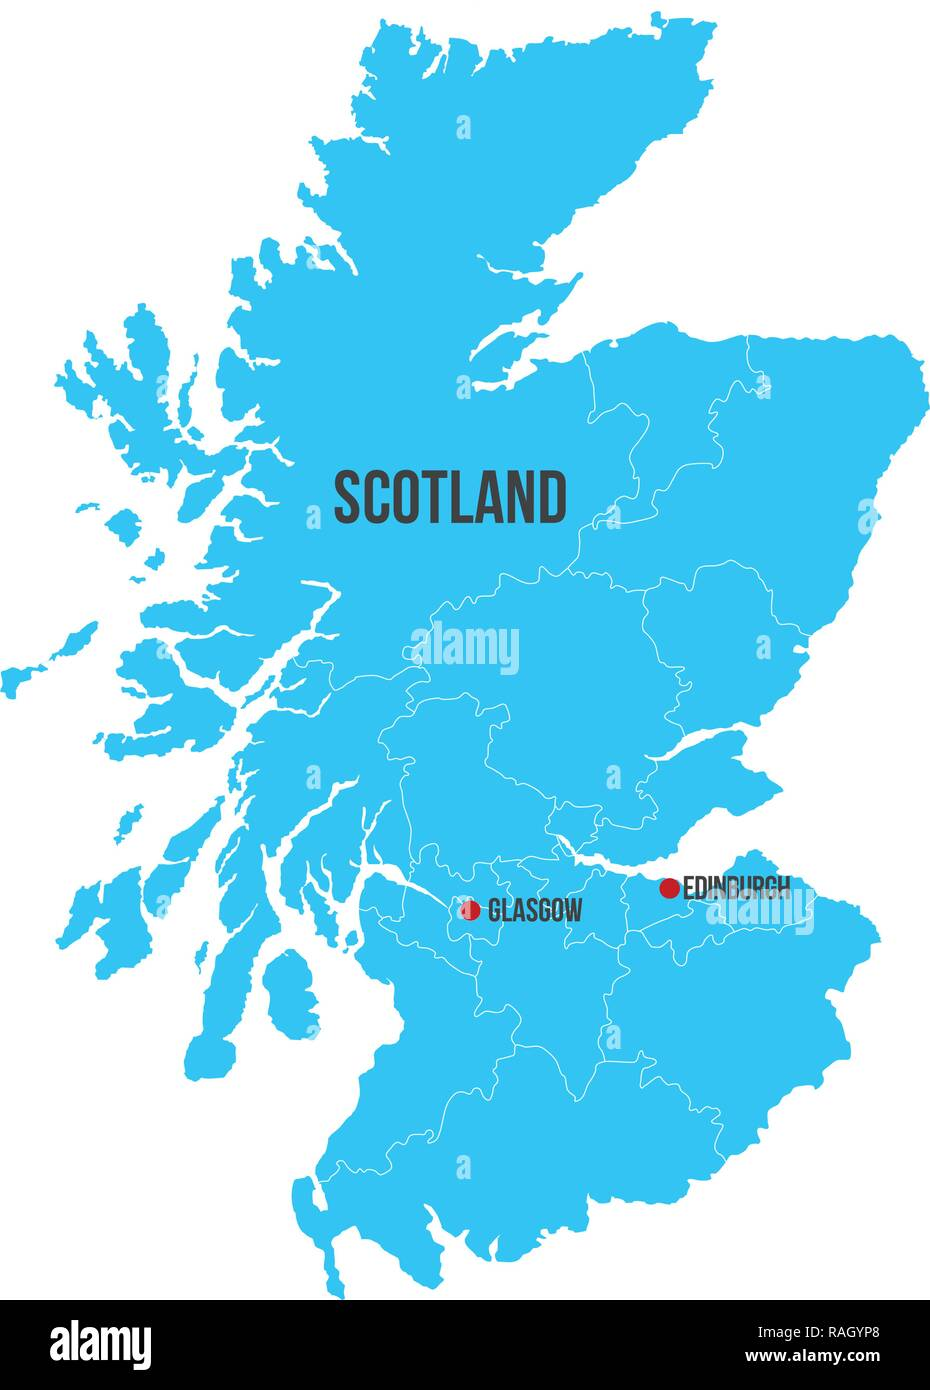 Scotland vector map silhouette isolated on white background. High detailed silhouette illustration. clean design - Stock Vector